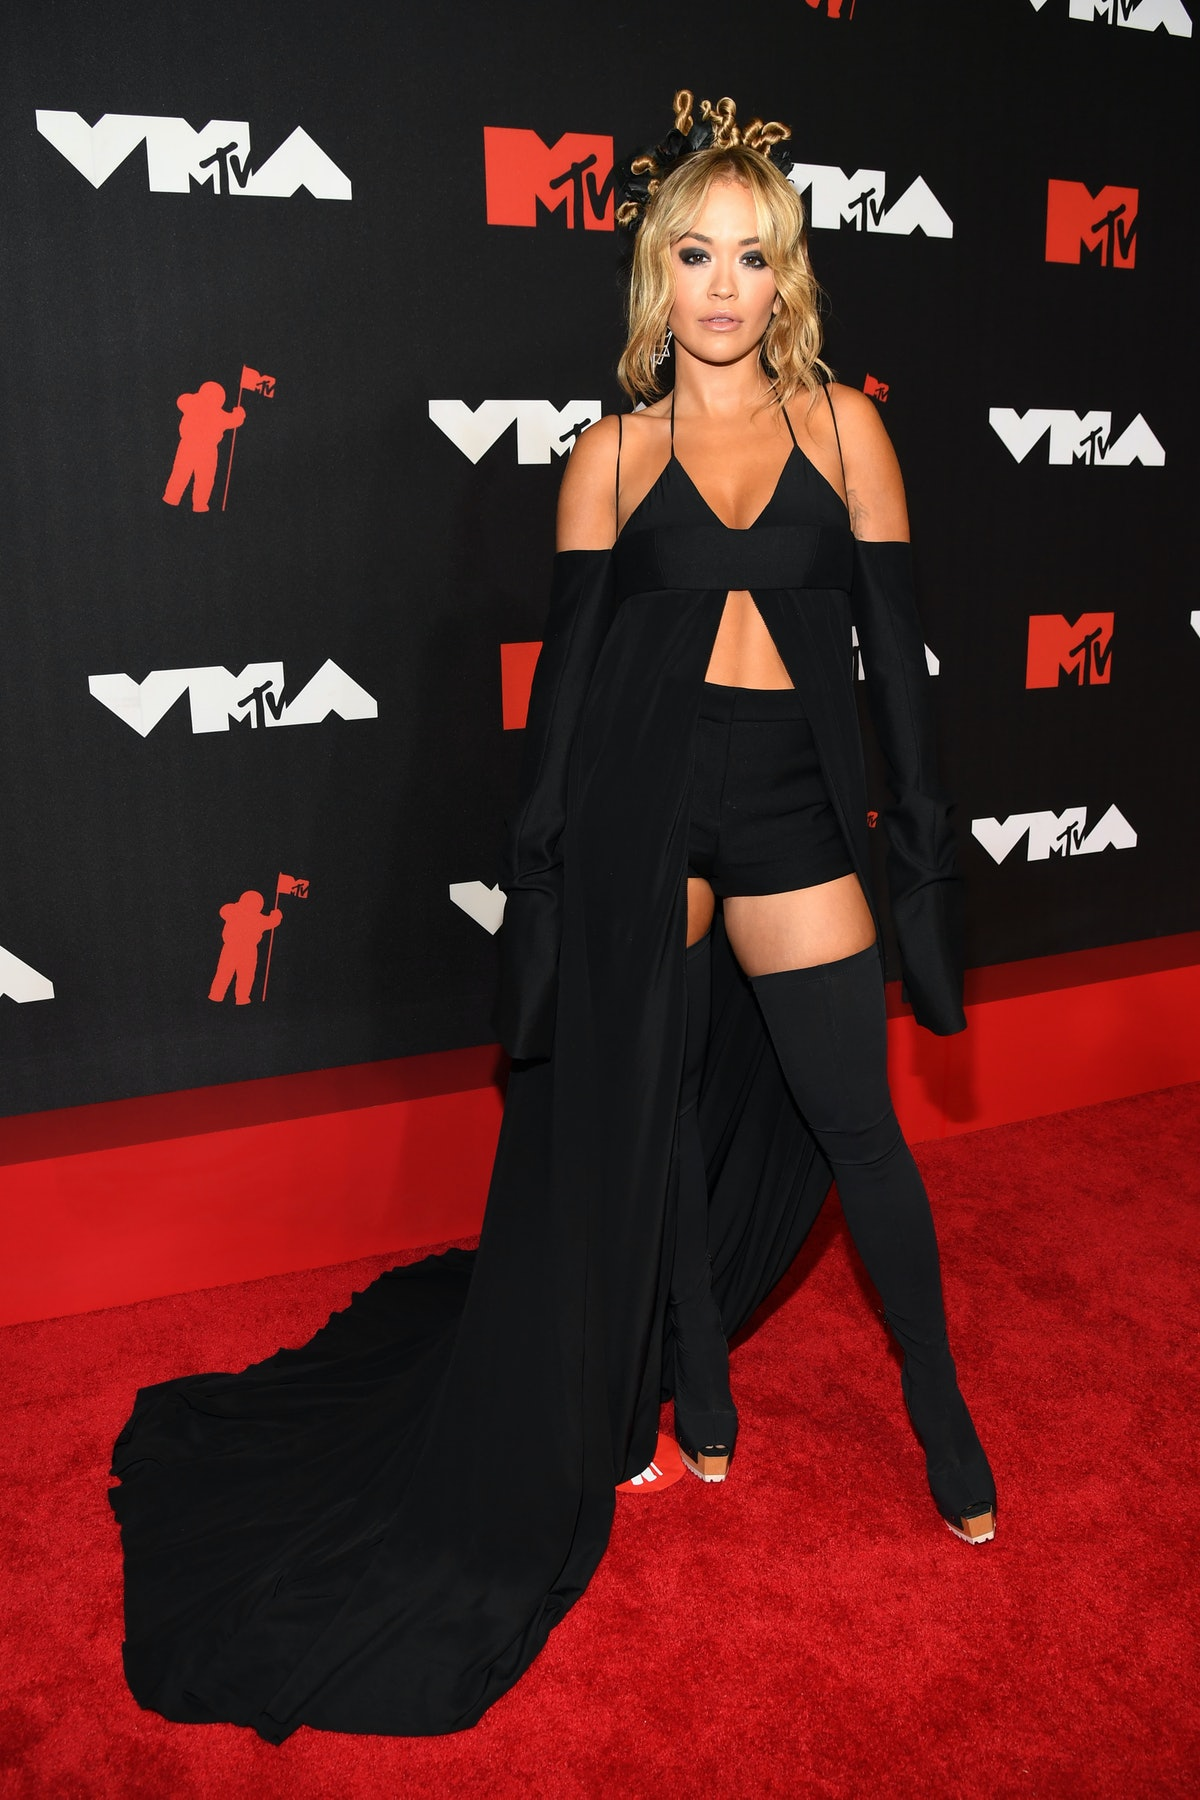 Rita Ora attends the 2021 MTV Video Music Awards at Barclays Center on September 12, 2021 in the Br...